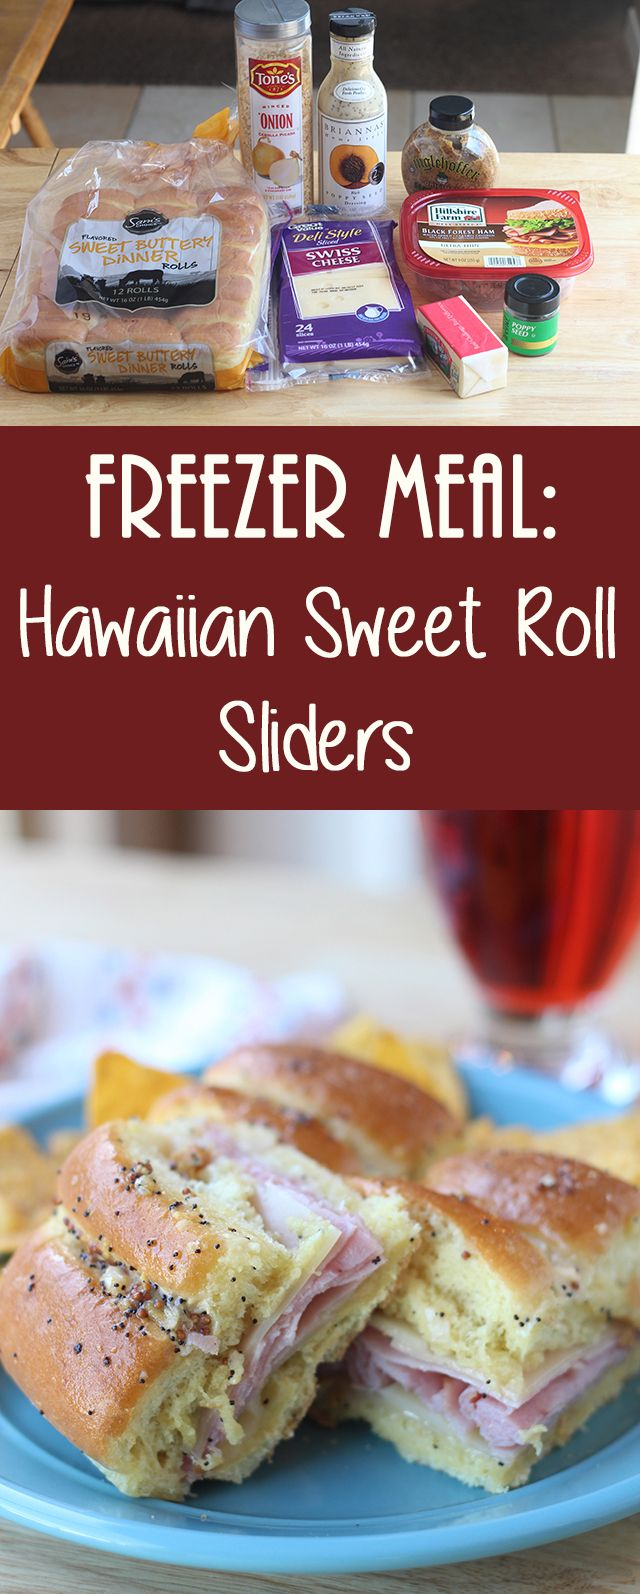 Whether you're feeding a small family or a large crowd, these sliders are sure to be a big hit! Make them ahead to save time - they freezer great!